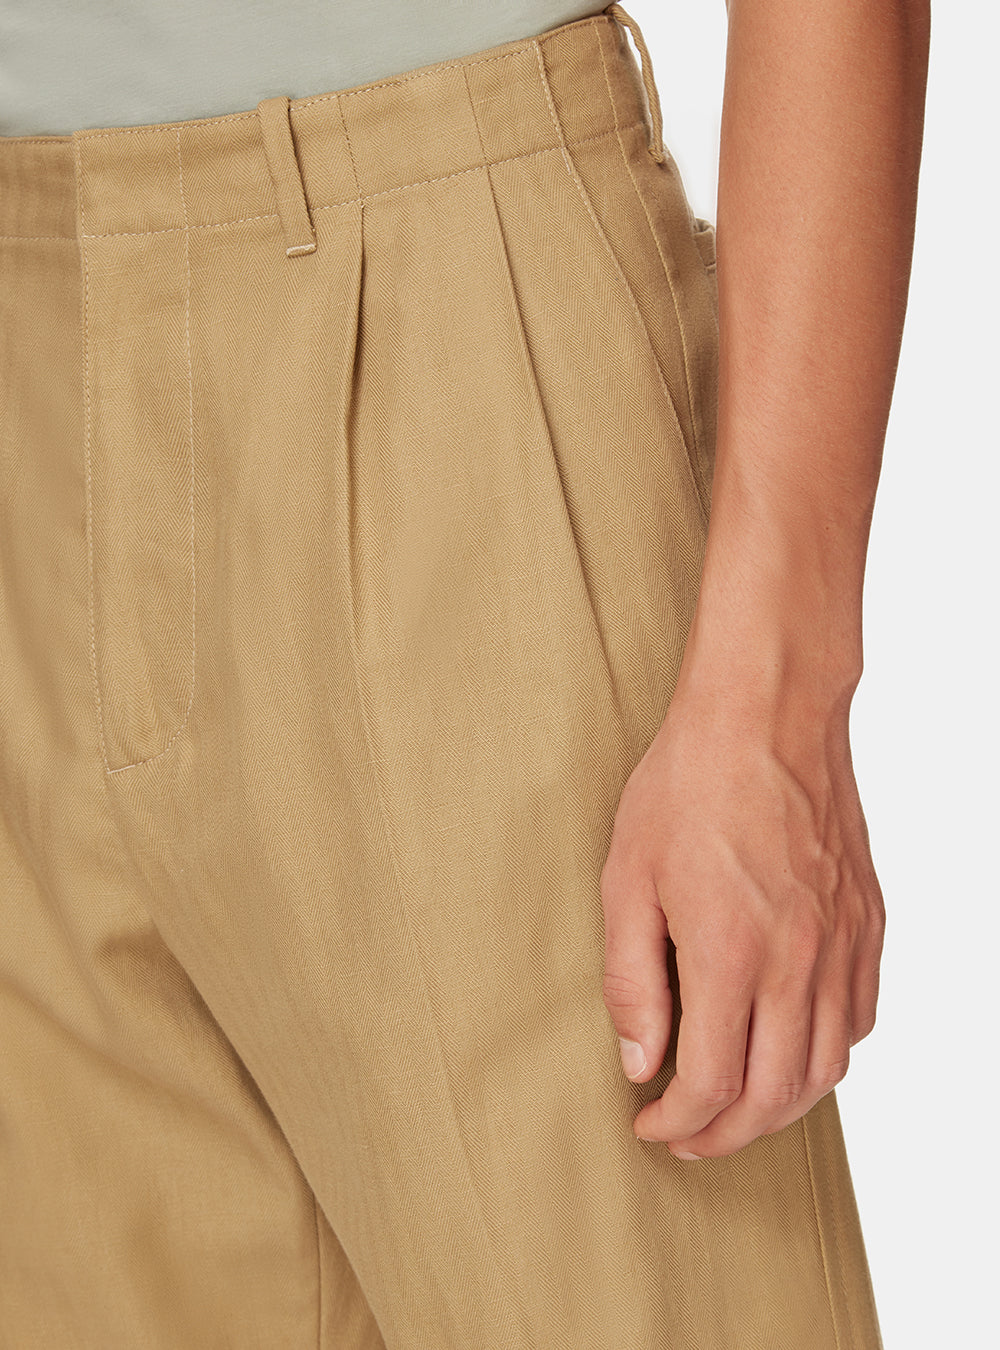 TANGIER PLEAT TROUSER